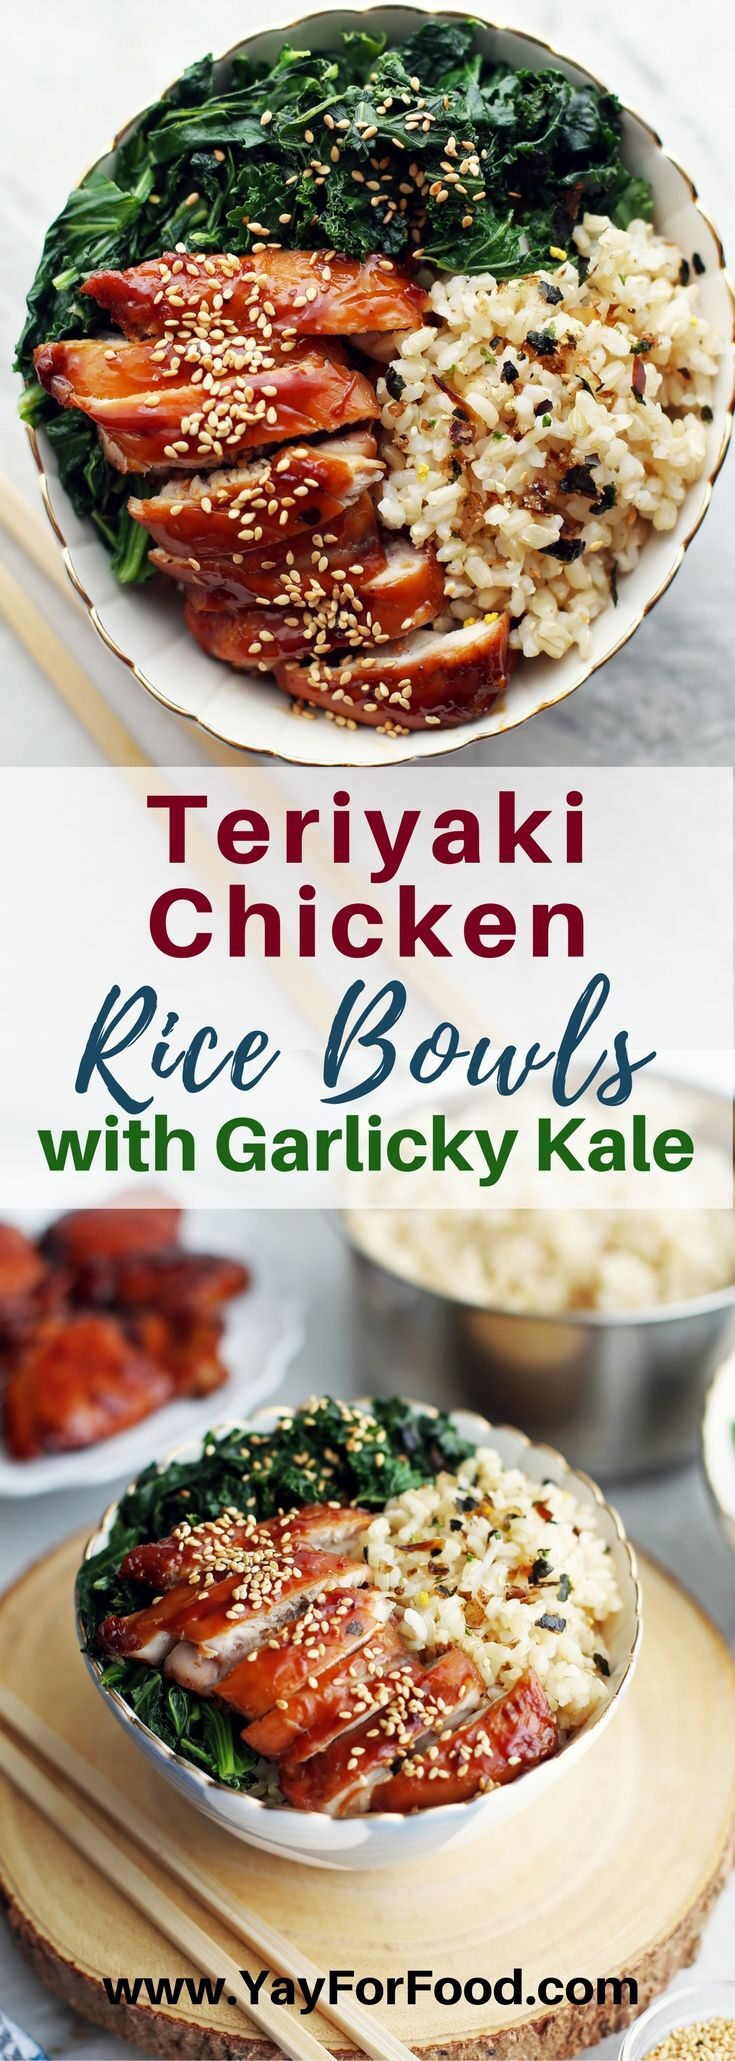 A healthy, flavourful, and easy-to-make rice bowl with scratch-made teriyaki chicken thighs and leafy green kale with garlic! Everything is ready in less than a hour too.